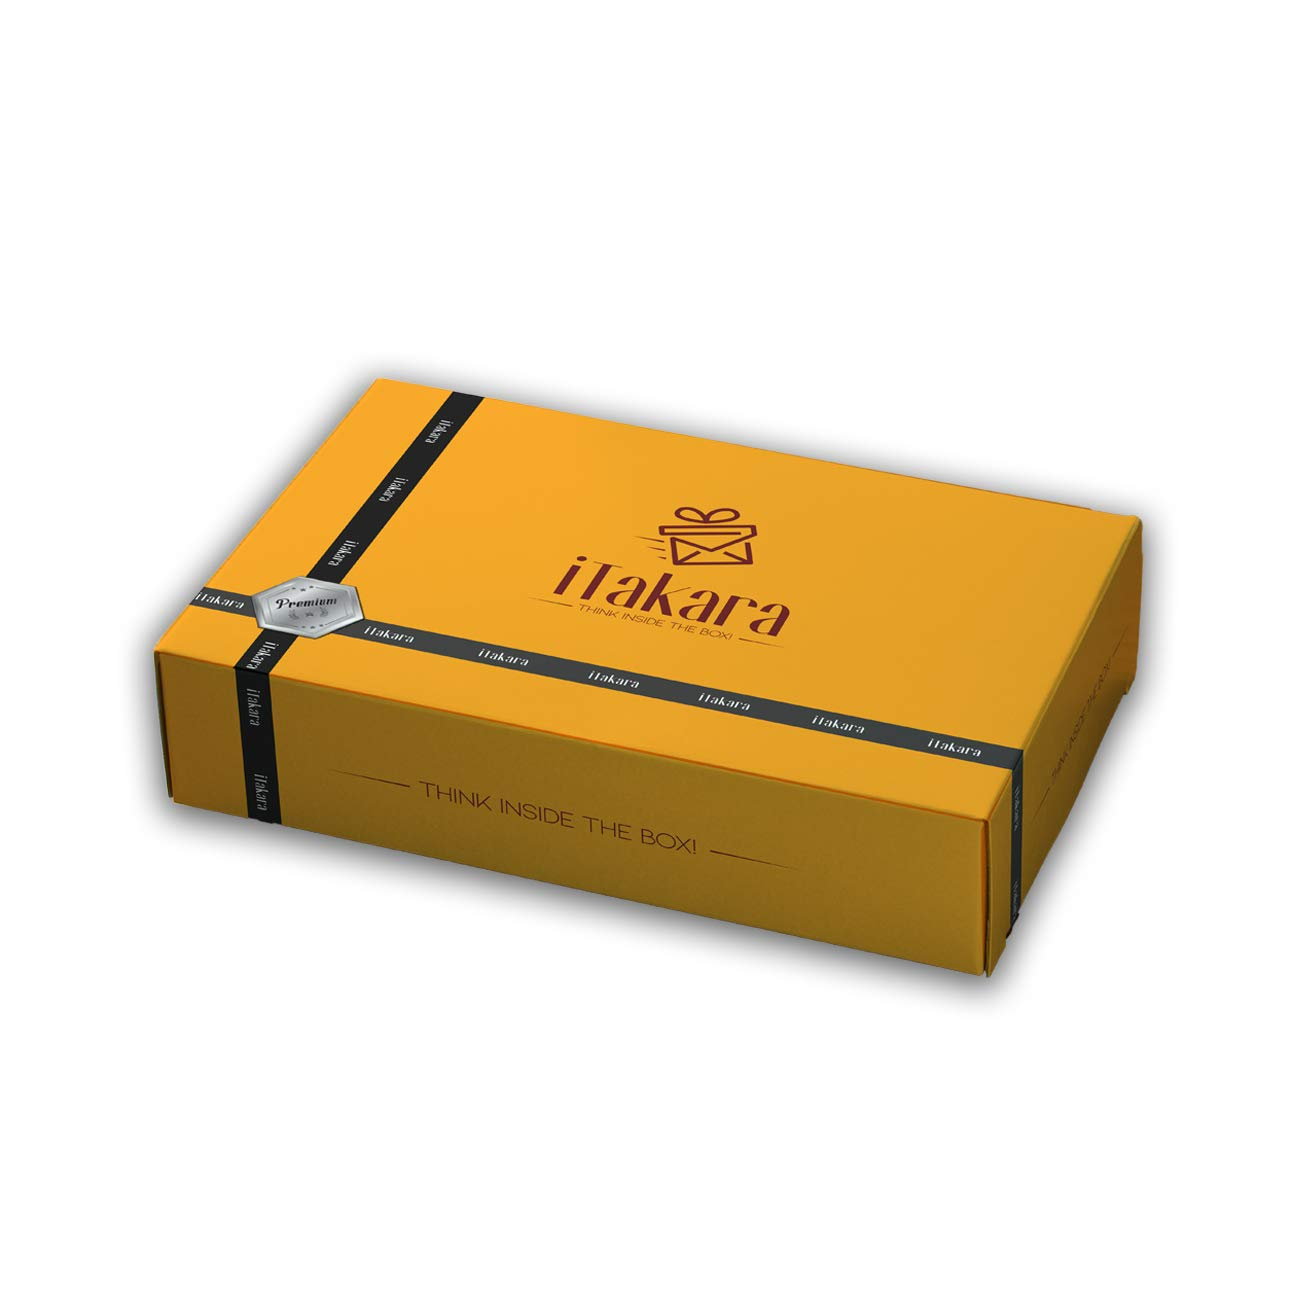 iTakara Nippon Kodo Kayuragi Incense Collection | Flowers of Japan Bundle 40x5 | Floral and Aromatic Wood Scents for Relaxation, Meditation, Prayer, Reading, Yoga | Clean Burning, Pure Scent by iTakara (Image #2)